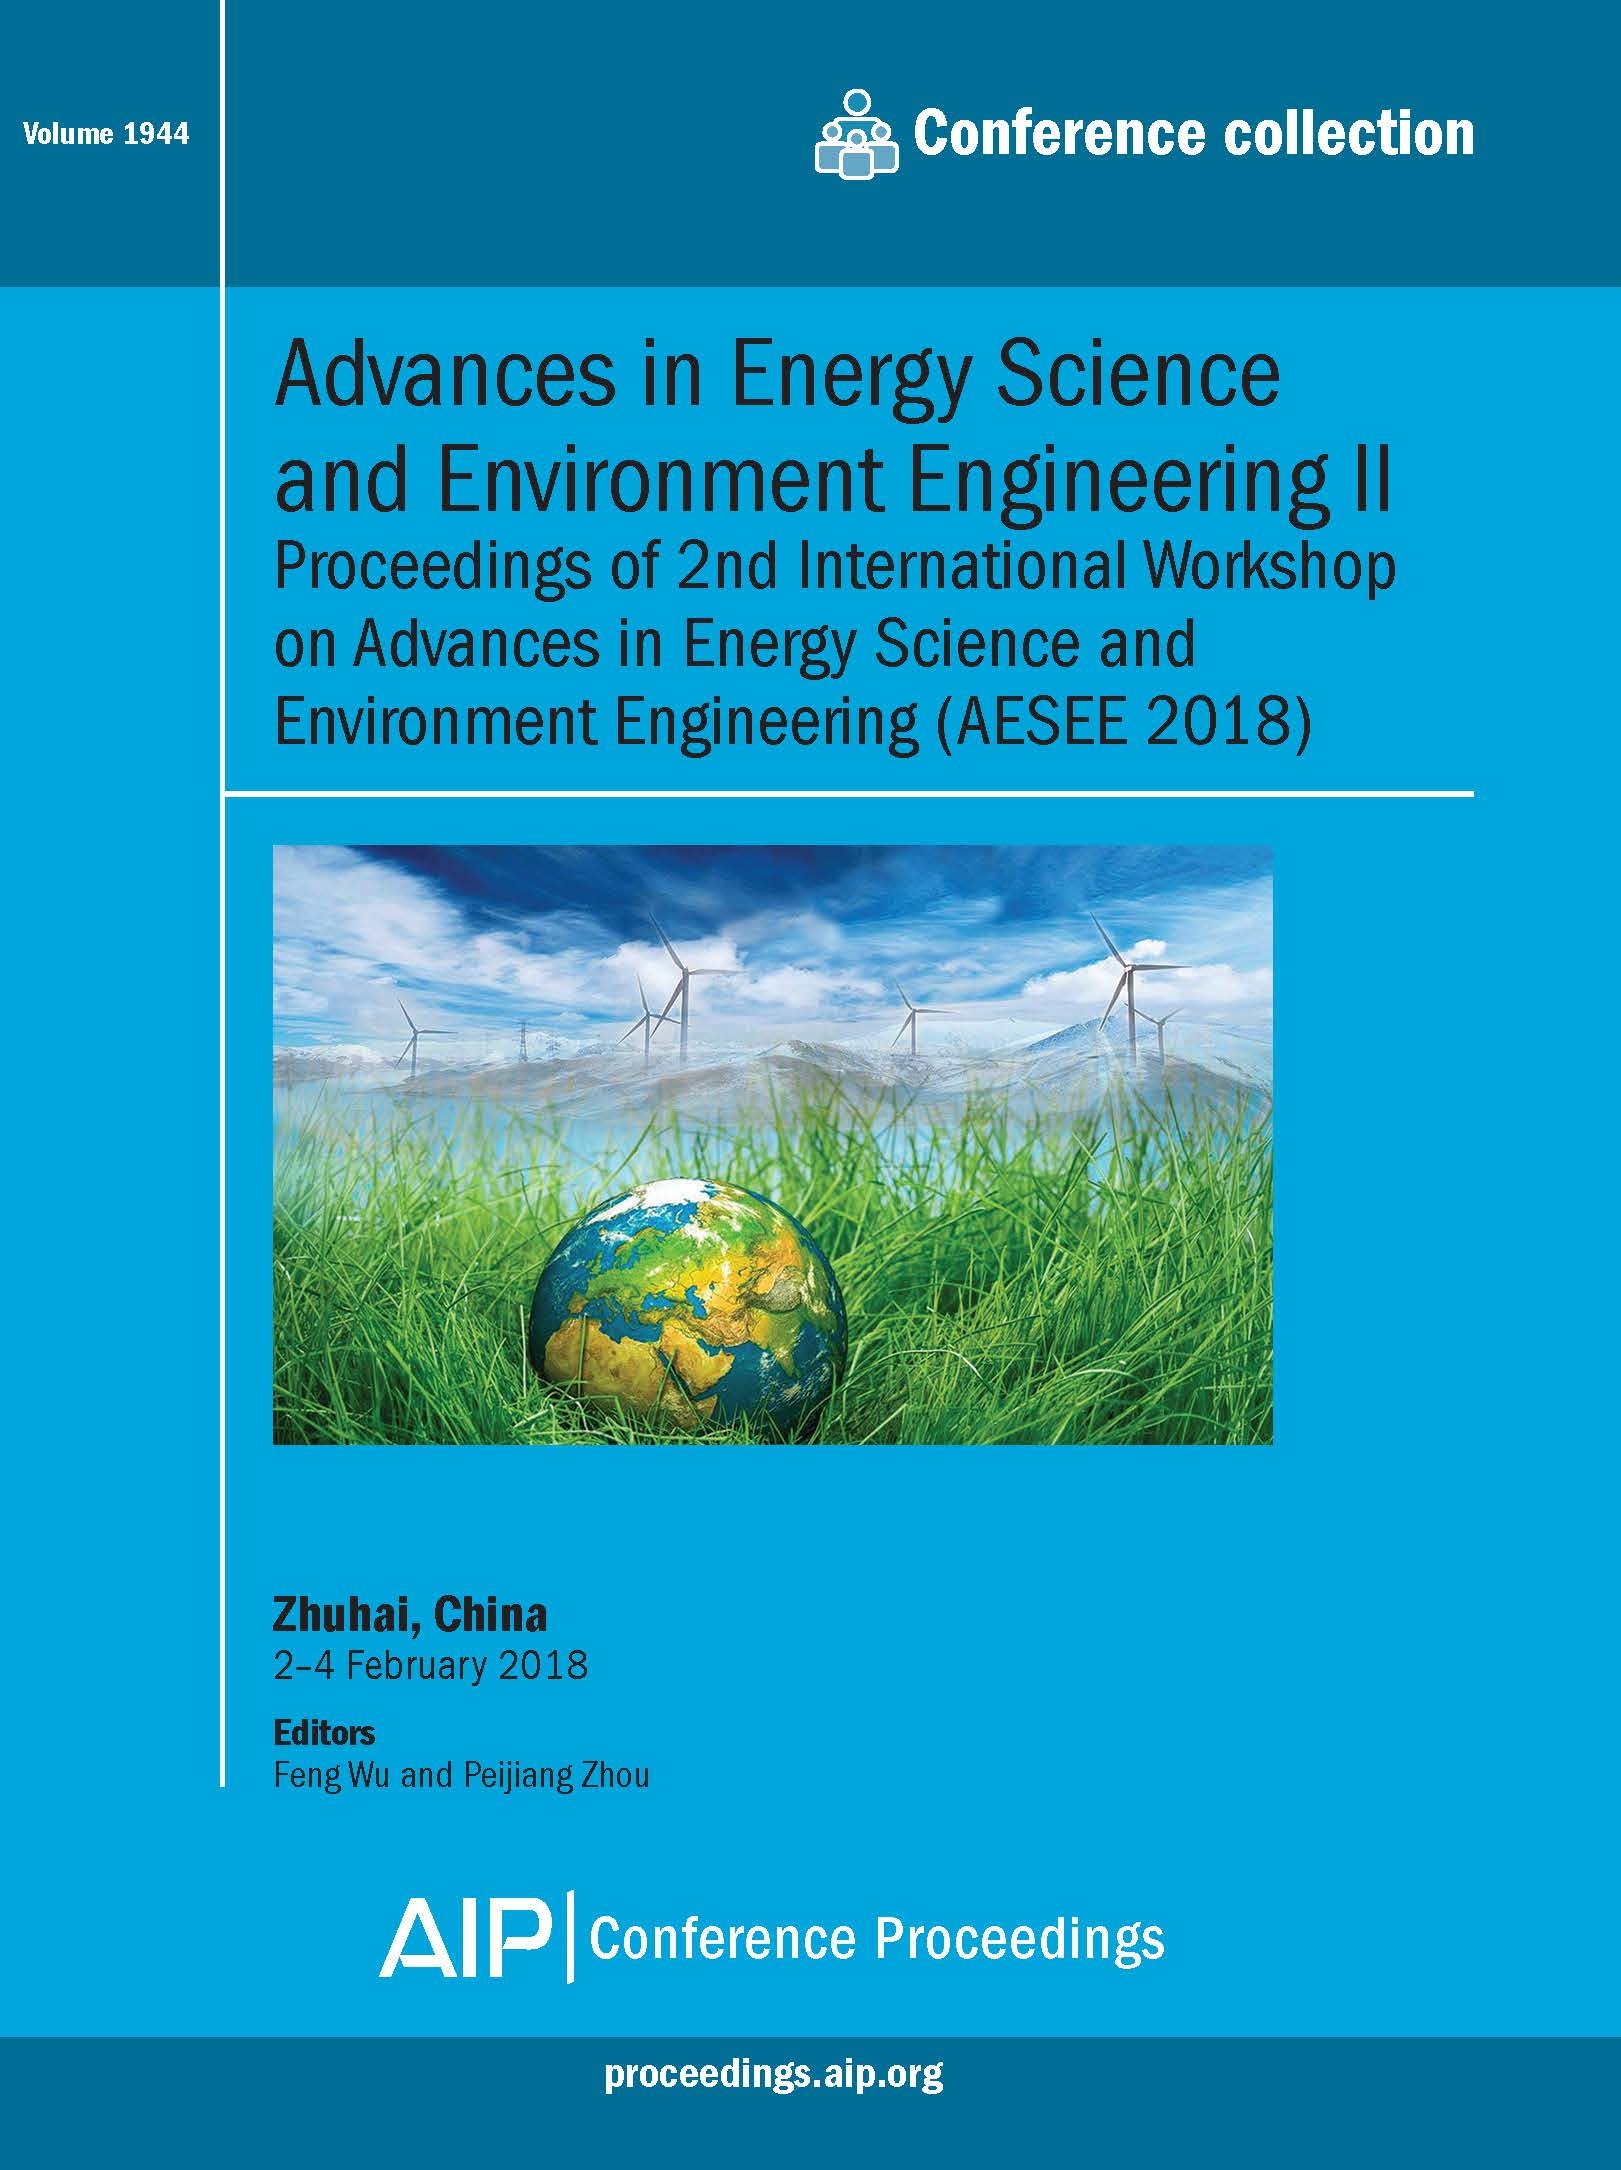 Volume 1944: Advances in Energy Science and Environment